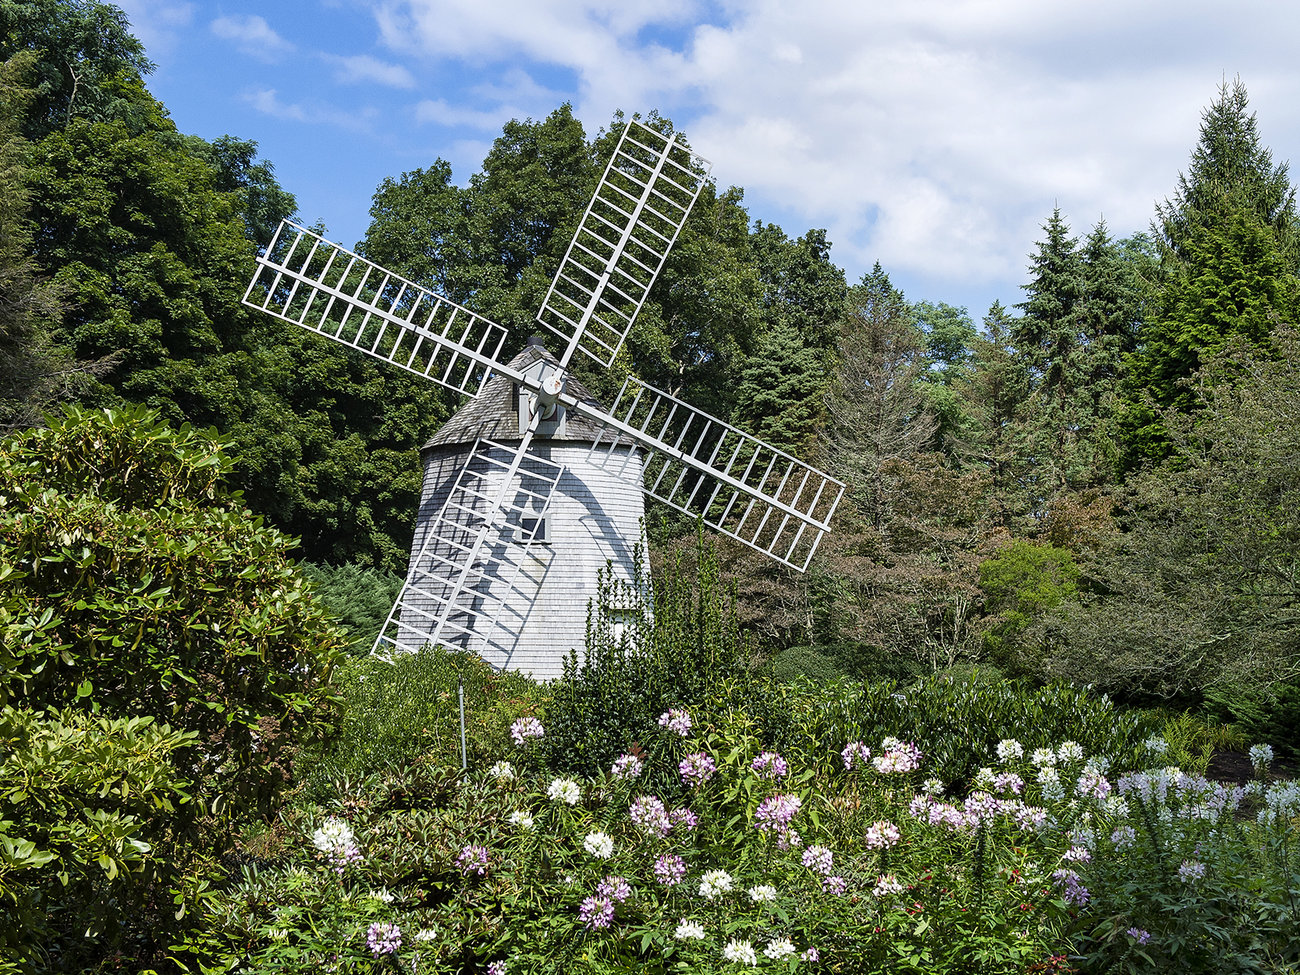 Heritage Museums & Gardens in Cape Cod